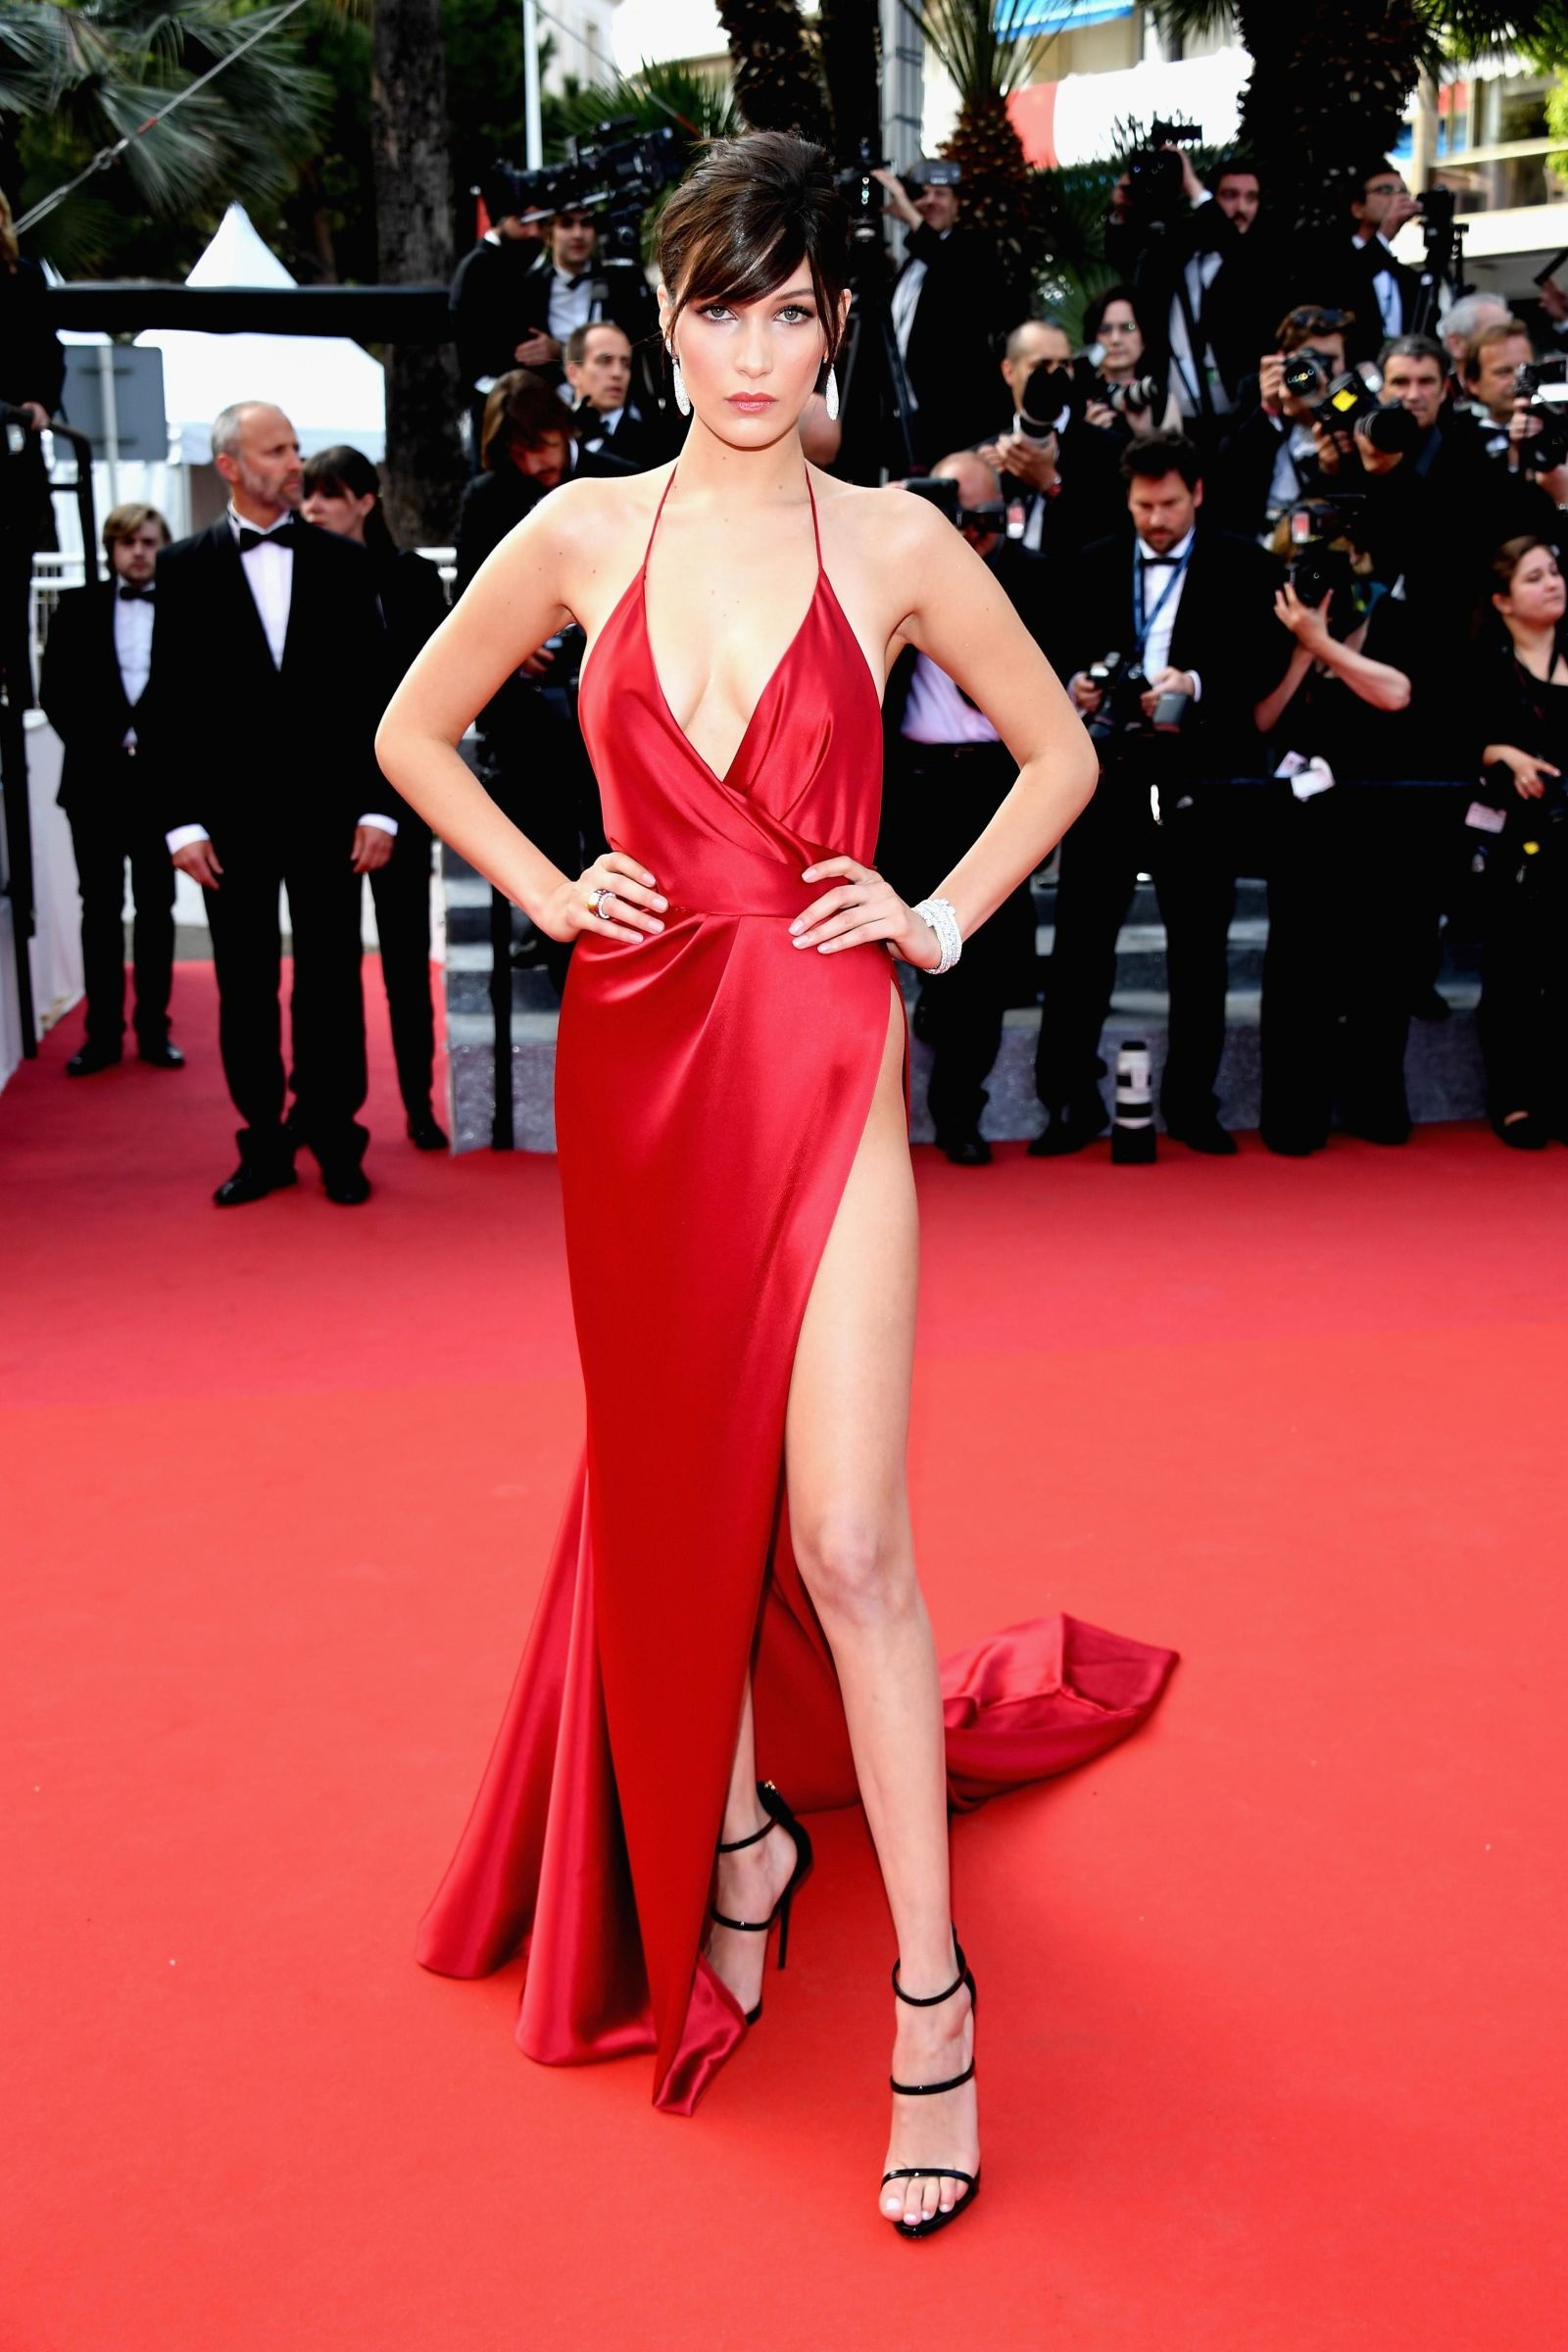 bella hadid red dress cannes 2016 (14)